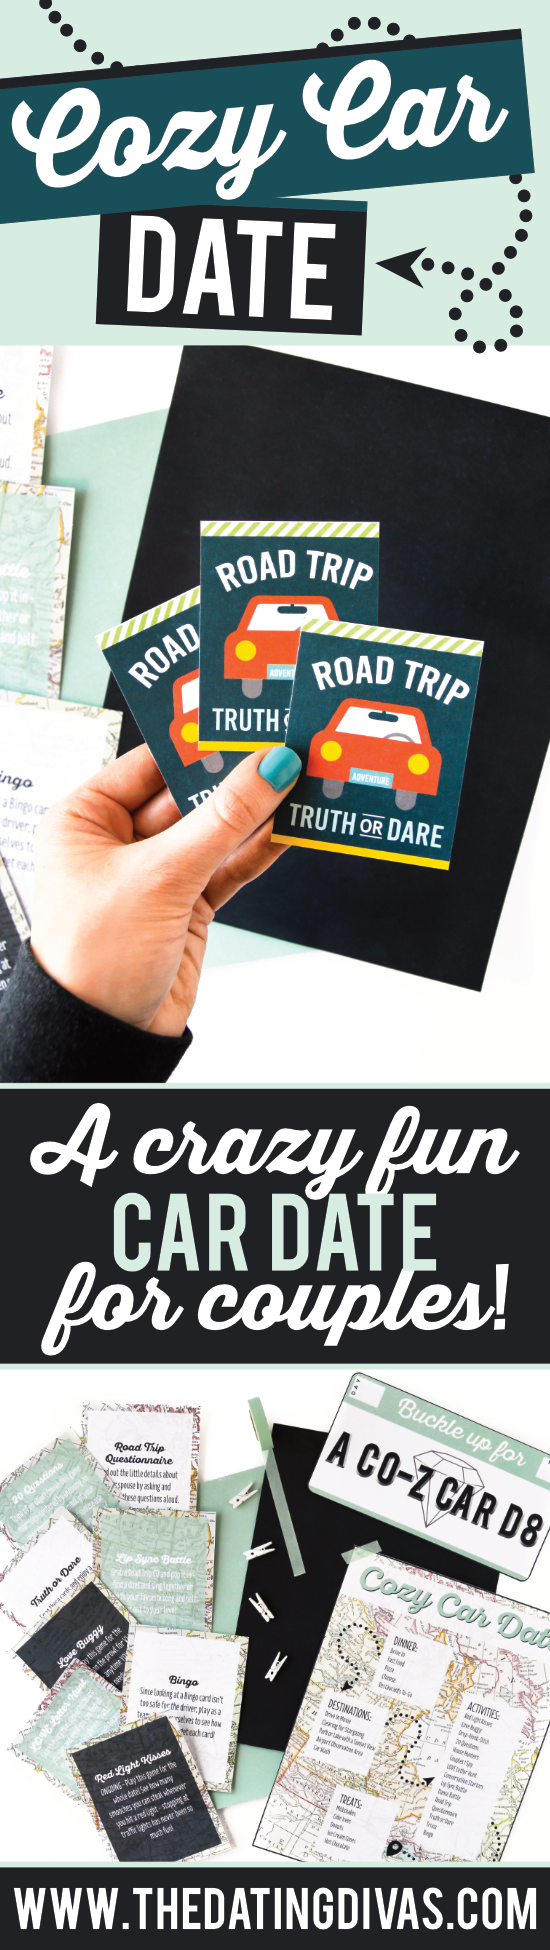 Cozy Car Date for Couples